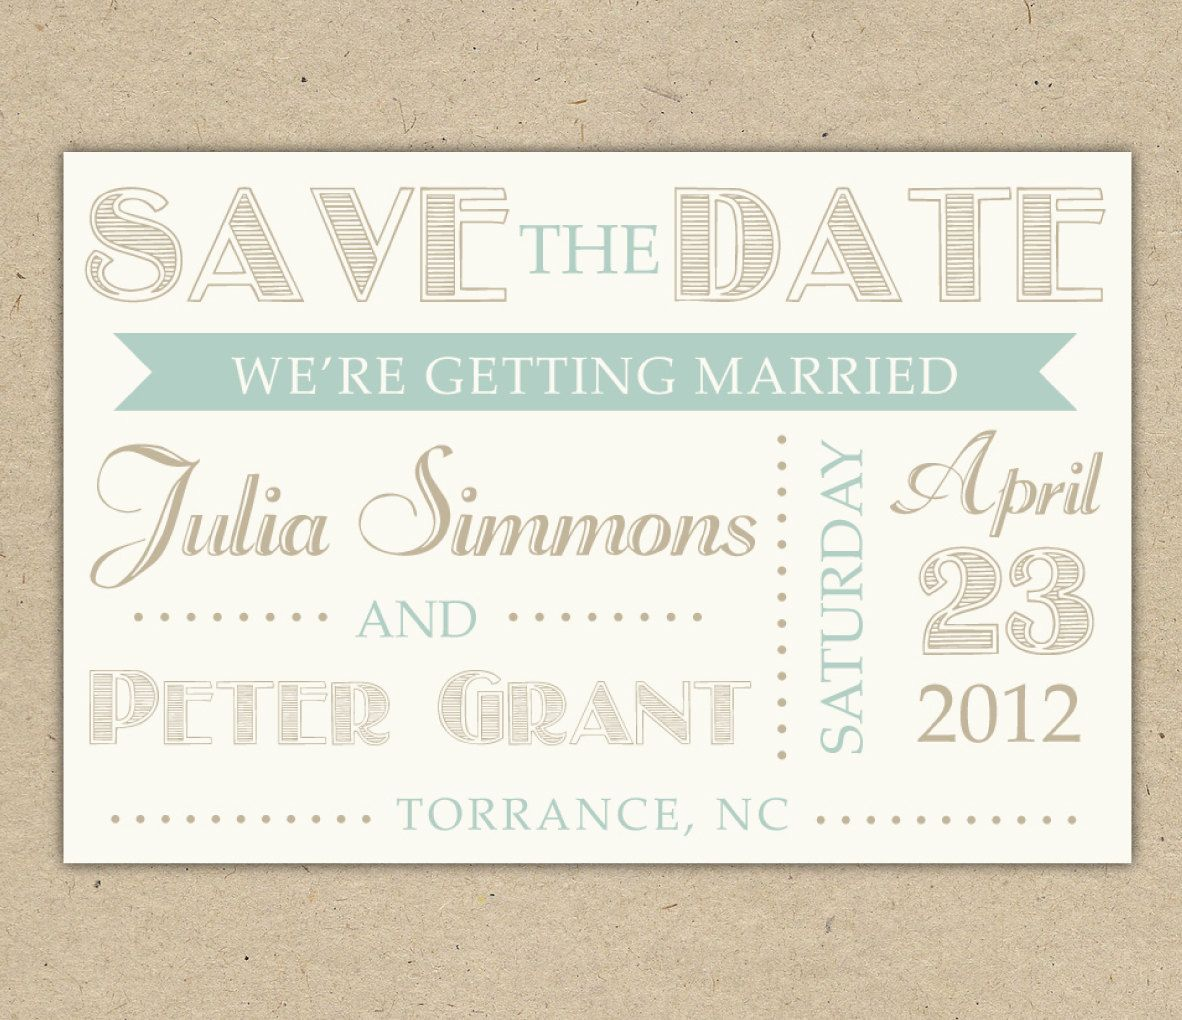 Save The Date Cards Templates For Weddings  Template Bridal